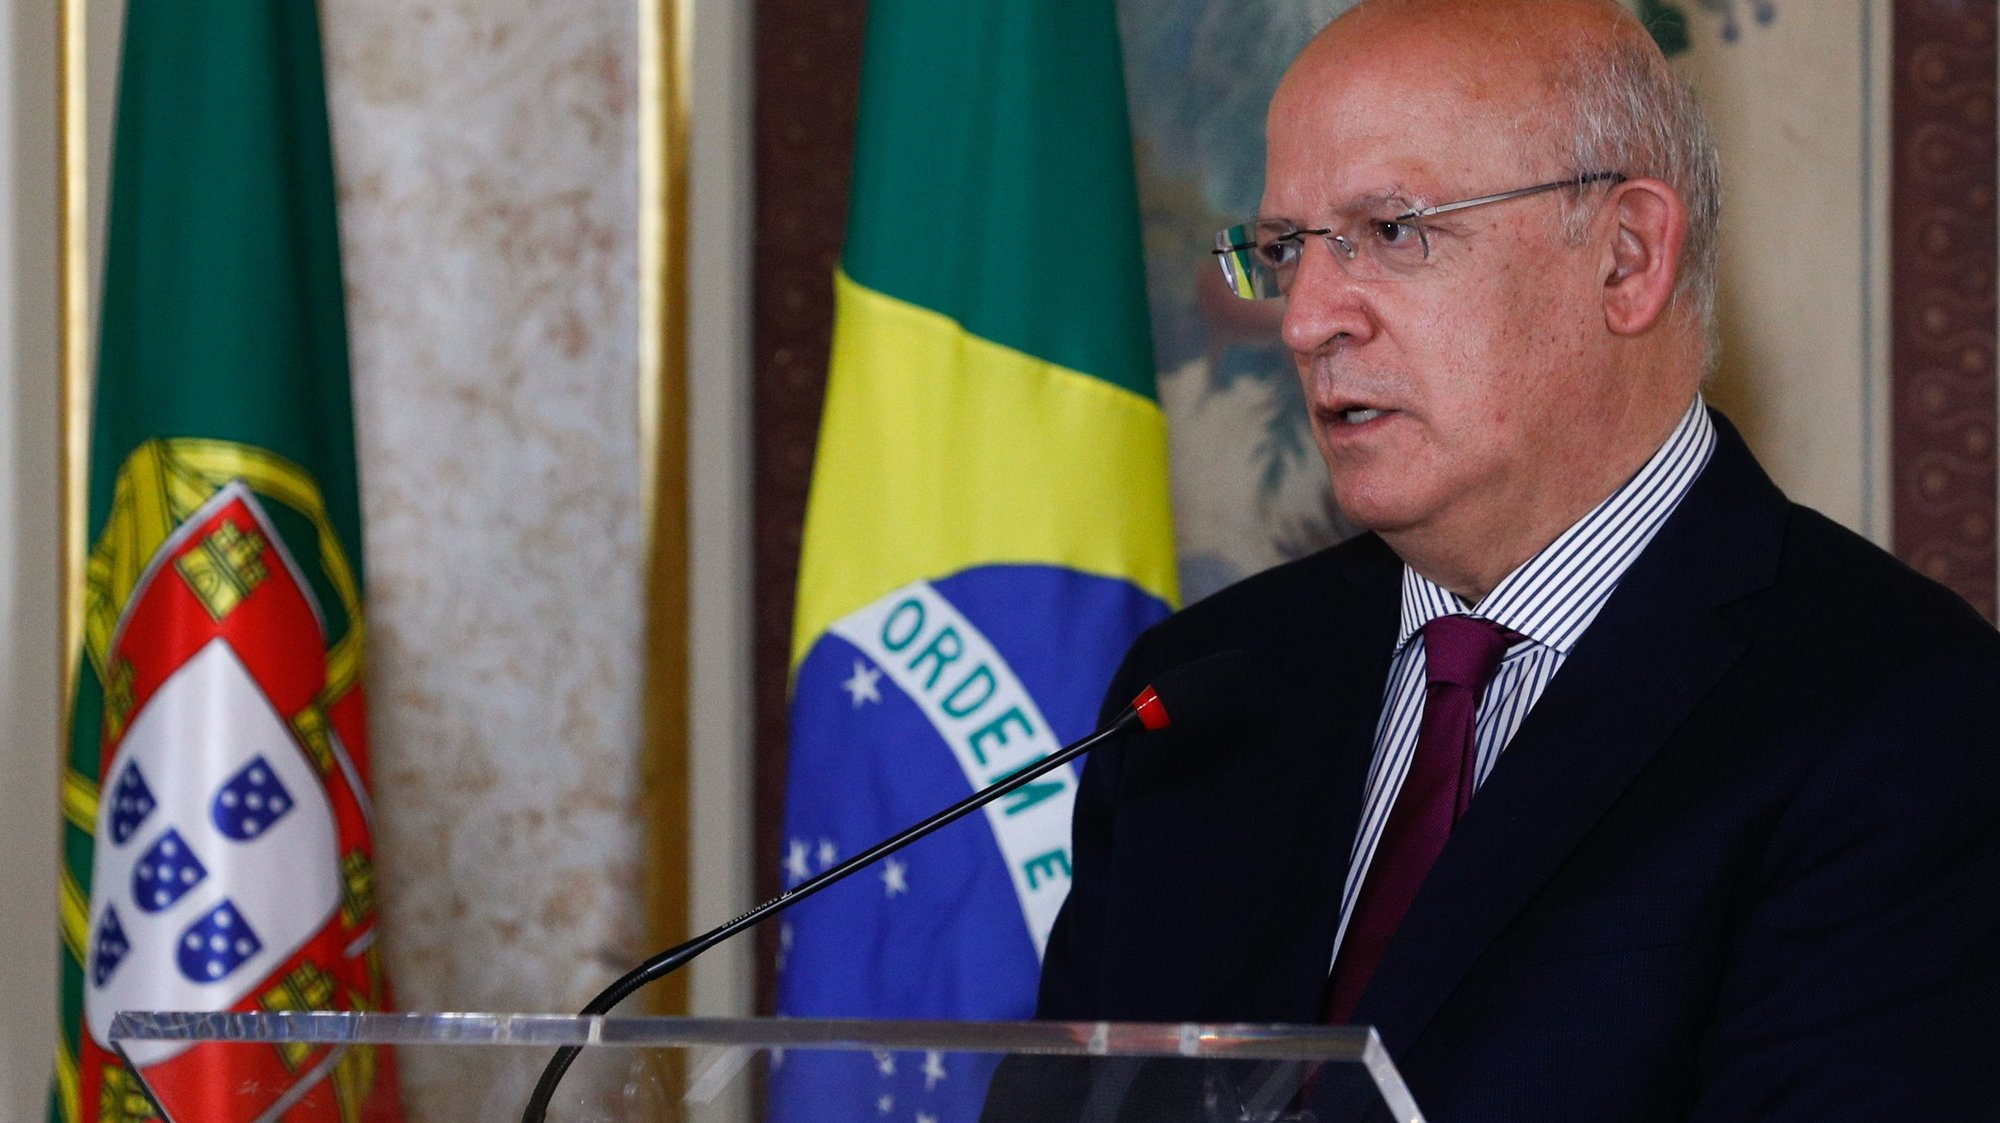 Portuguese Minister of State for Foreigner Affairs Augusto Santos Silva attends a press conference after a meeting with Brazilian Minister of Foreigner Affairs Carlos Franco Franca (not seen) at the Necessidades Palace in Lisbon, Portugal, 02 July 2021.  ANTONIO COTRIM/LUSA